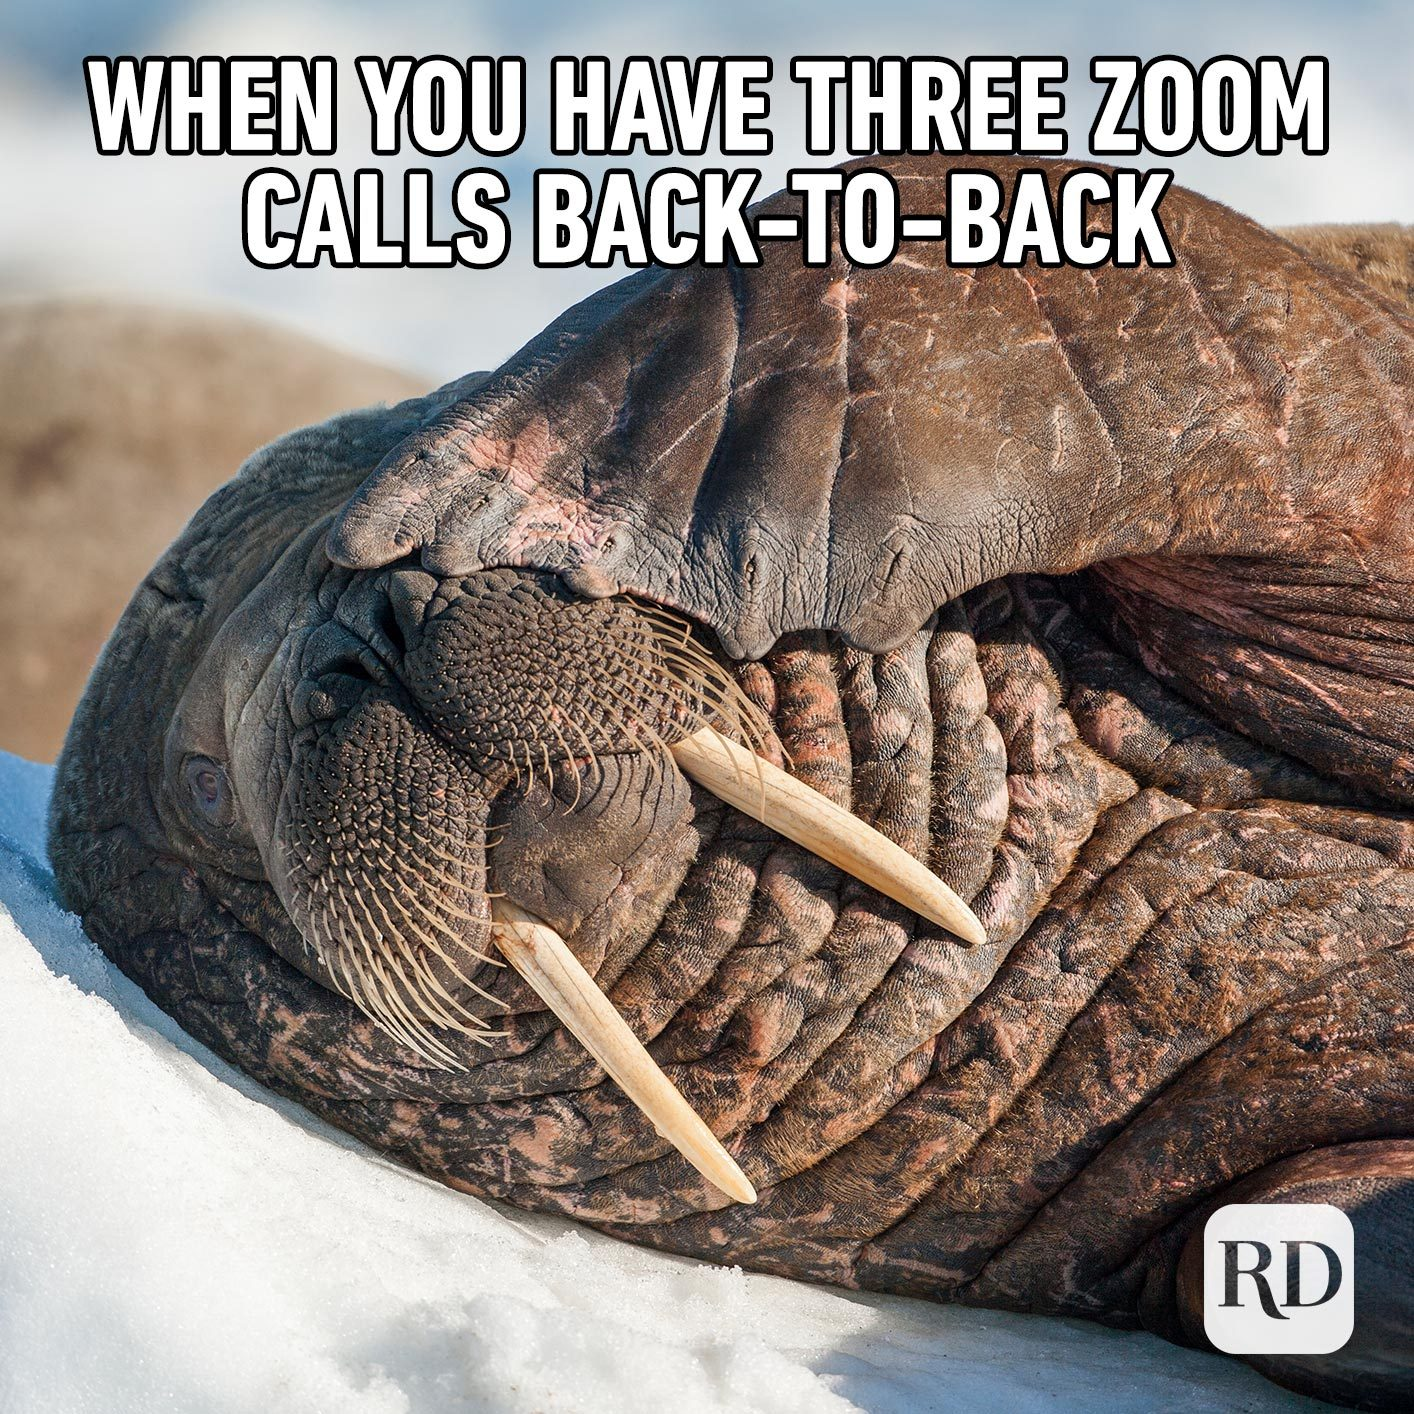 Walrus covering eyes. Meme text: When you have three Zoom calls back-to-back